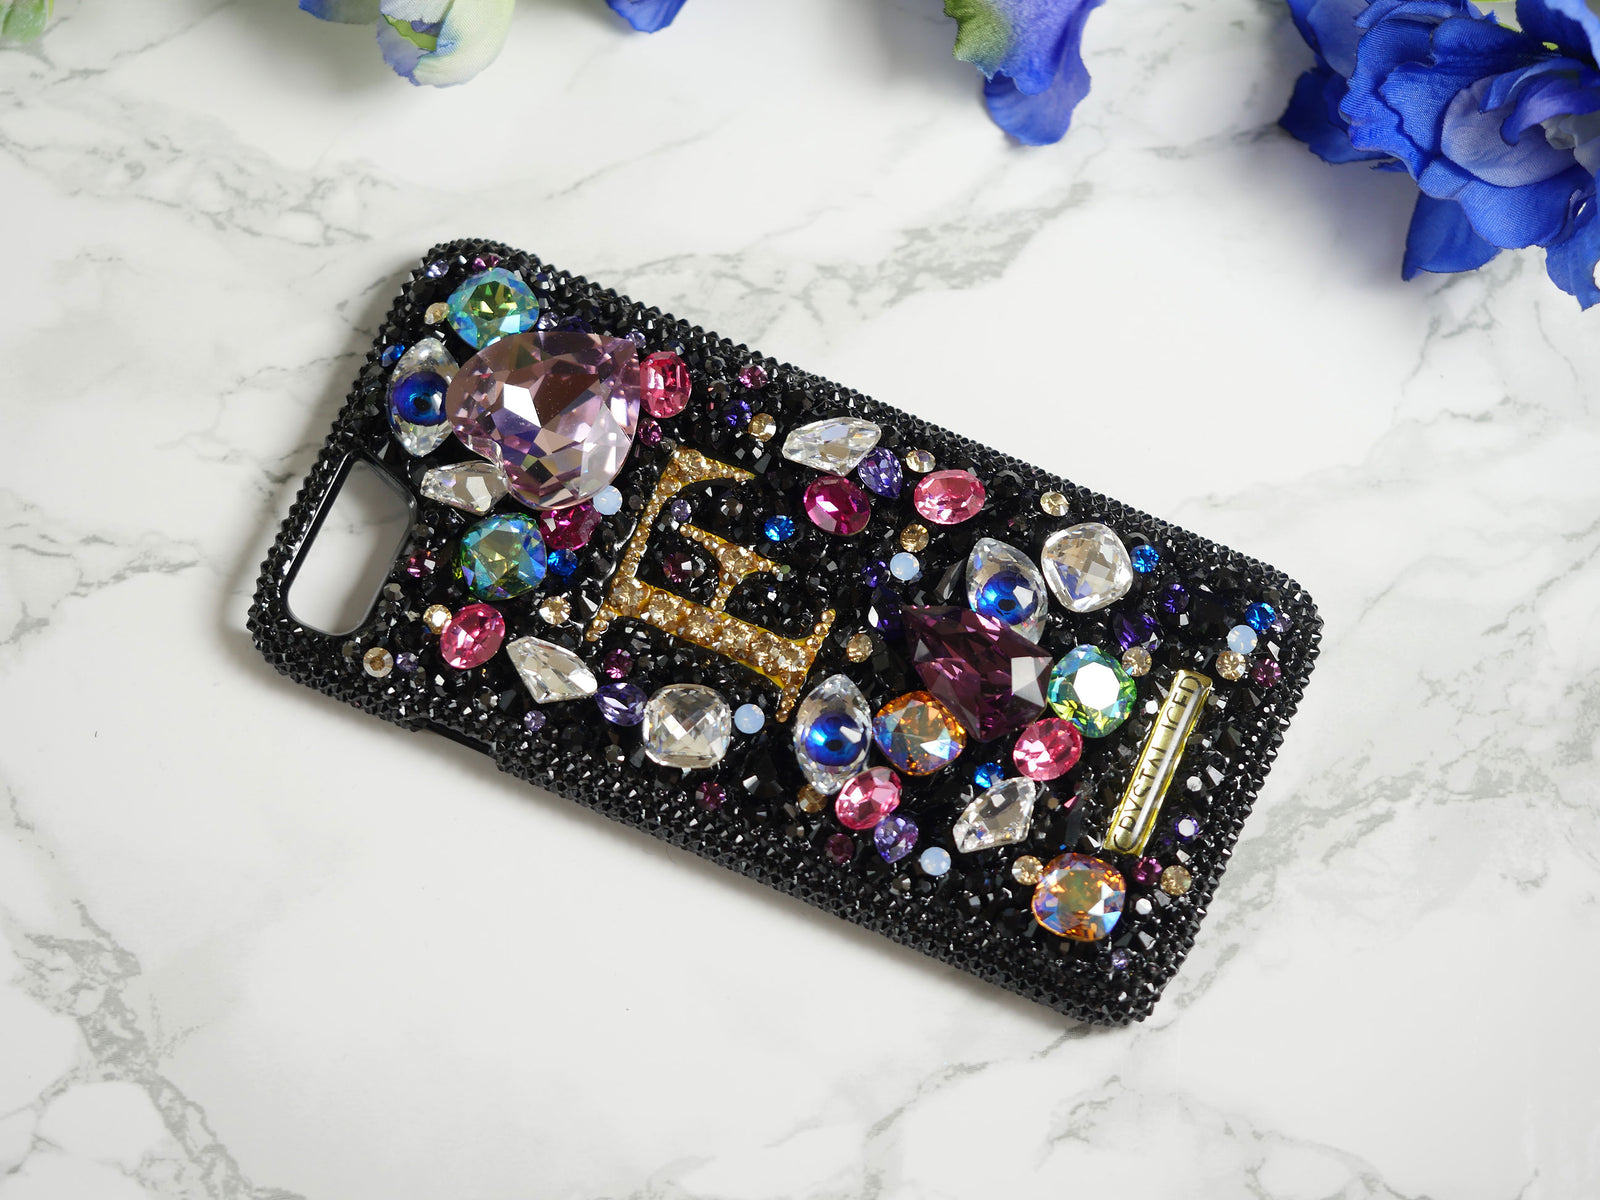 Samsung Galaxy S6 Edge+ Plus Swarovski Crystal Cases